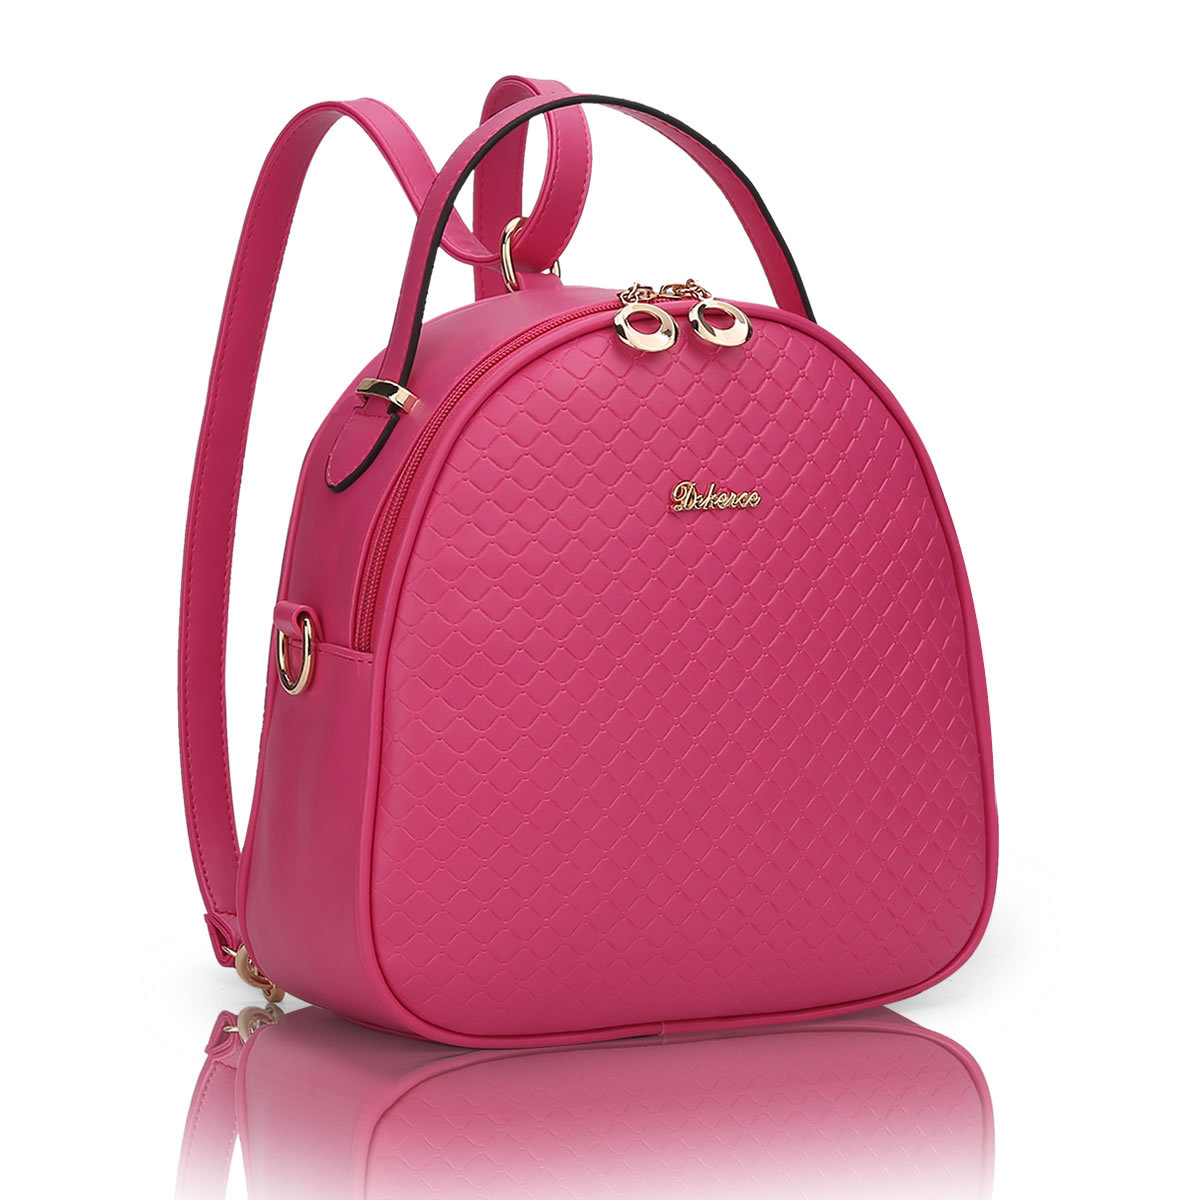 475fb6a7648 High Quality 2017 New Female Backpack PU Leather Shoulder Bag School  Student Cute Tote Bag Girls Fashion Bags Feminina Mochilas-in Backpacks  from Luggage ...